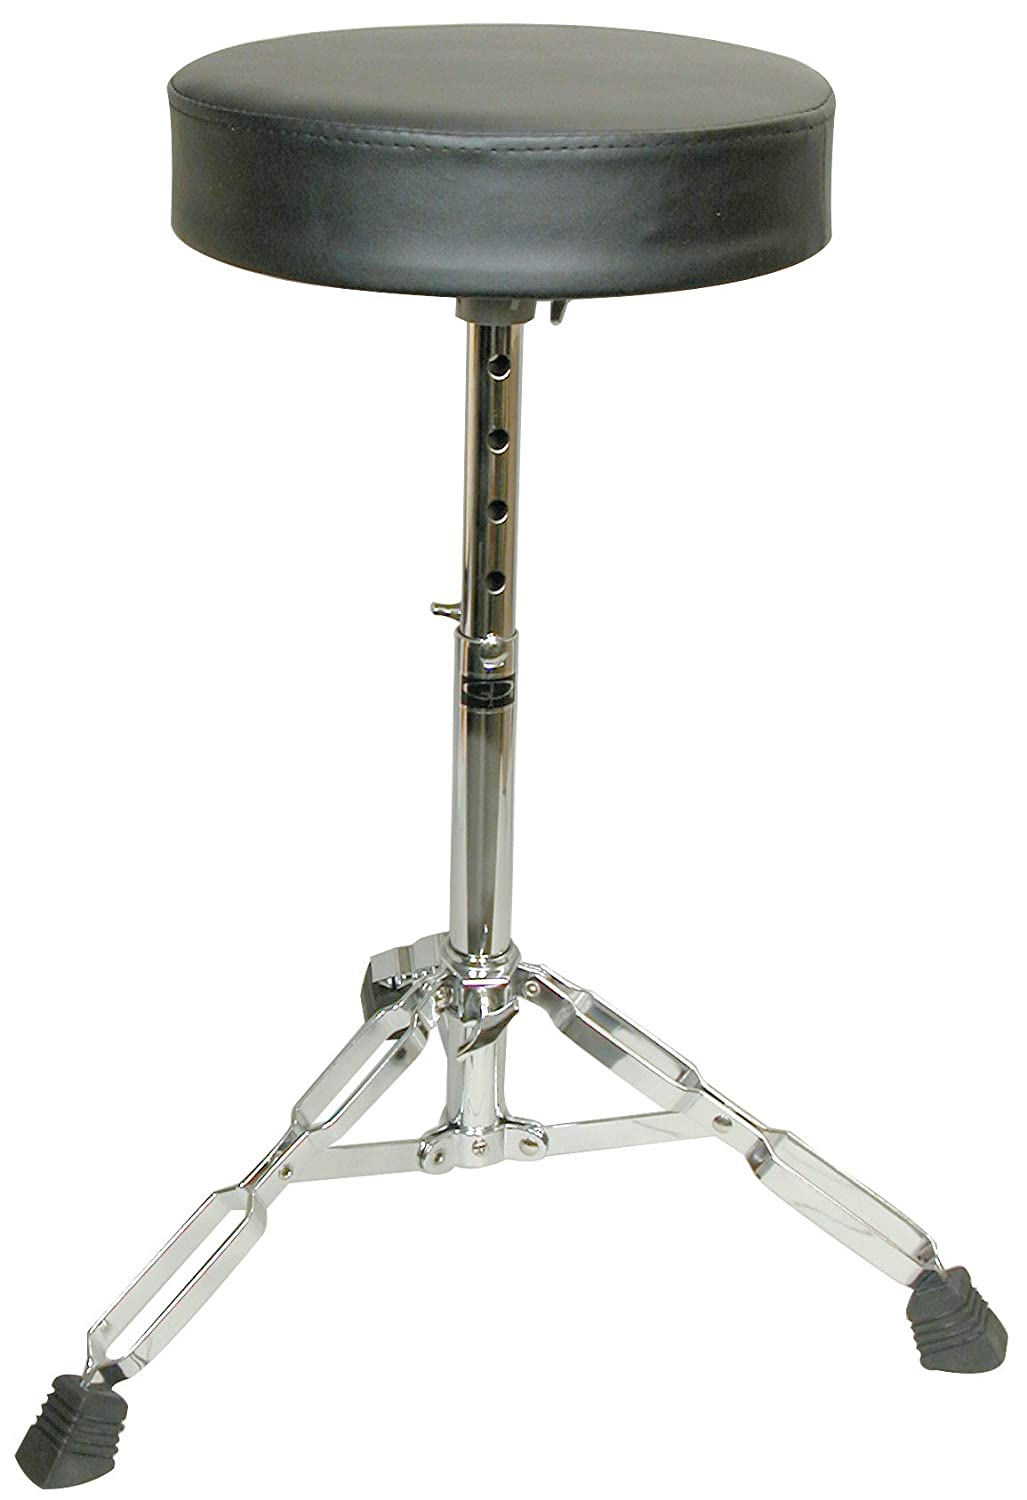 GP Percussion D250 Double Braced Drummer's Throne M & M Merchandisers Inc